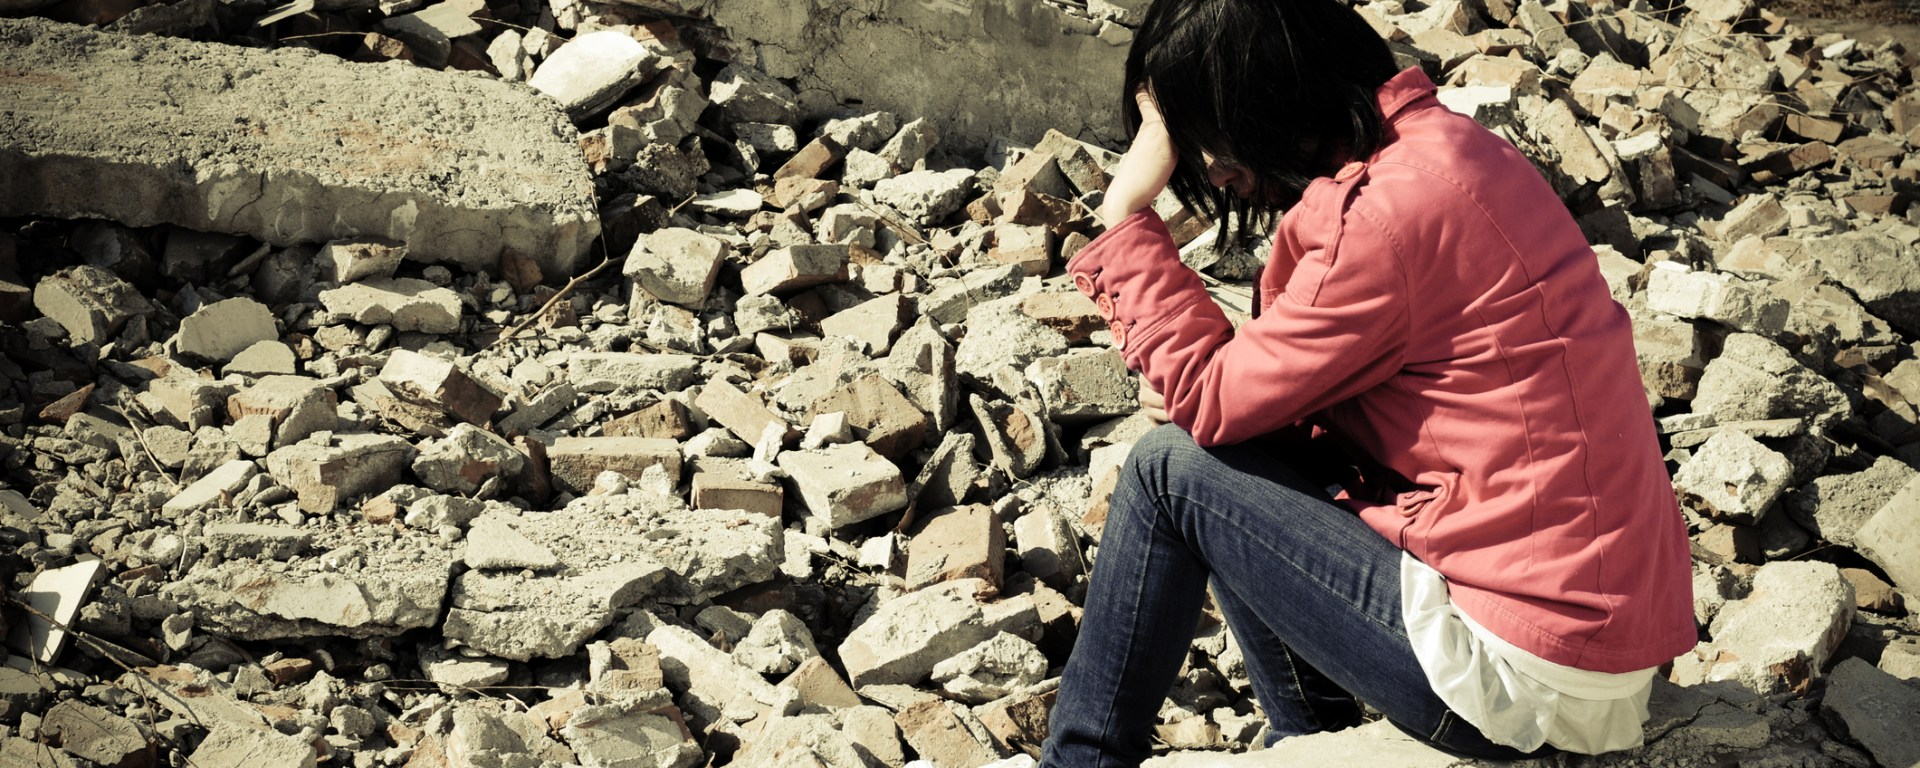 A woman sitting on a brick next to a pile of rubble